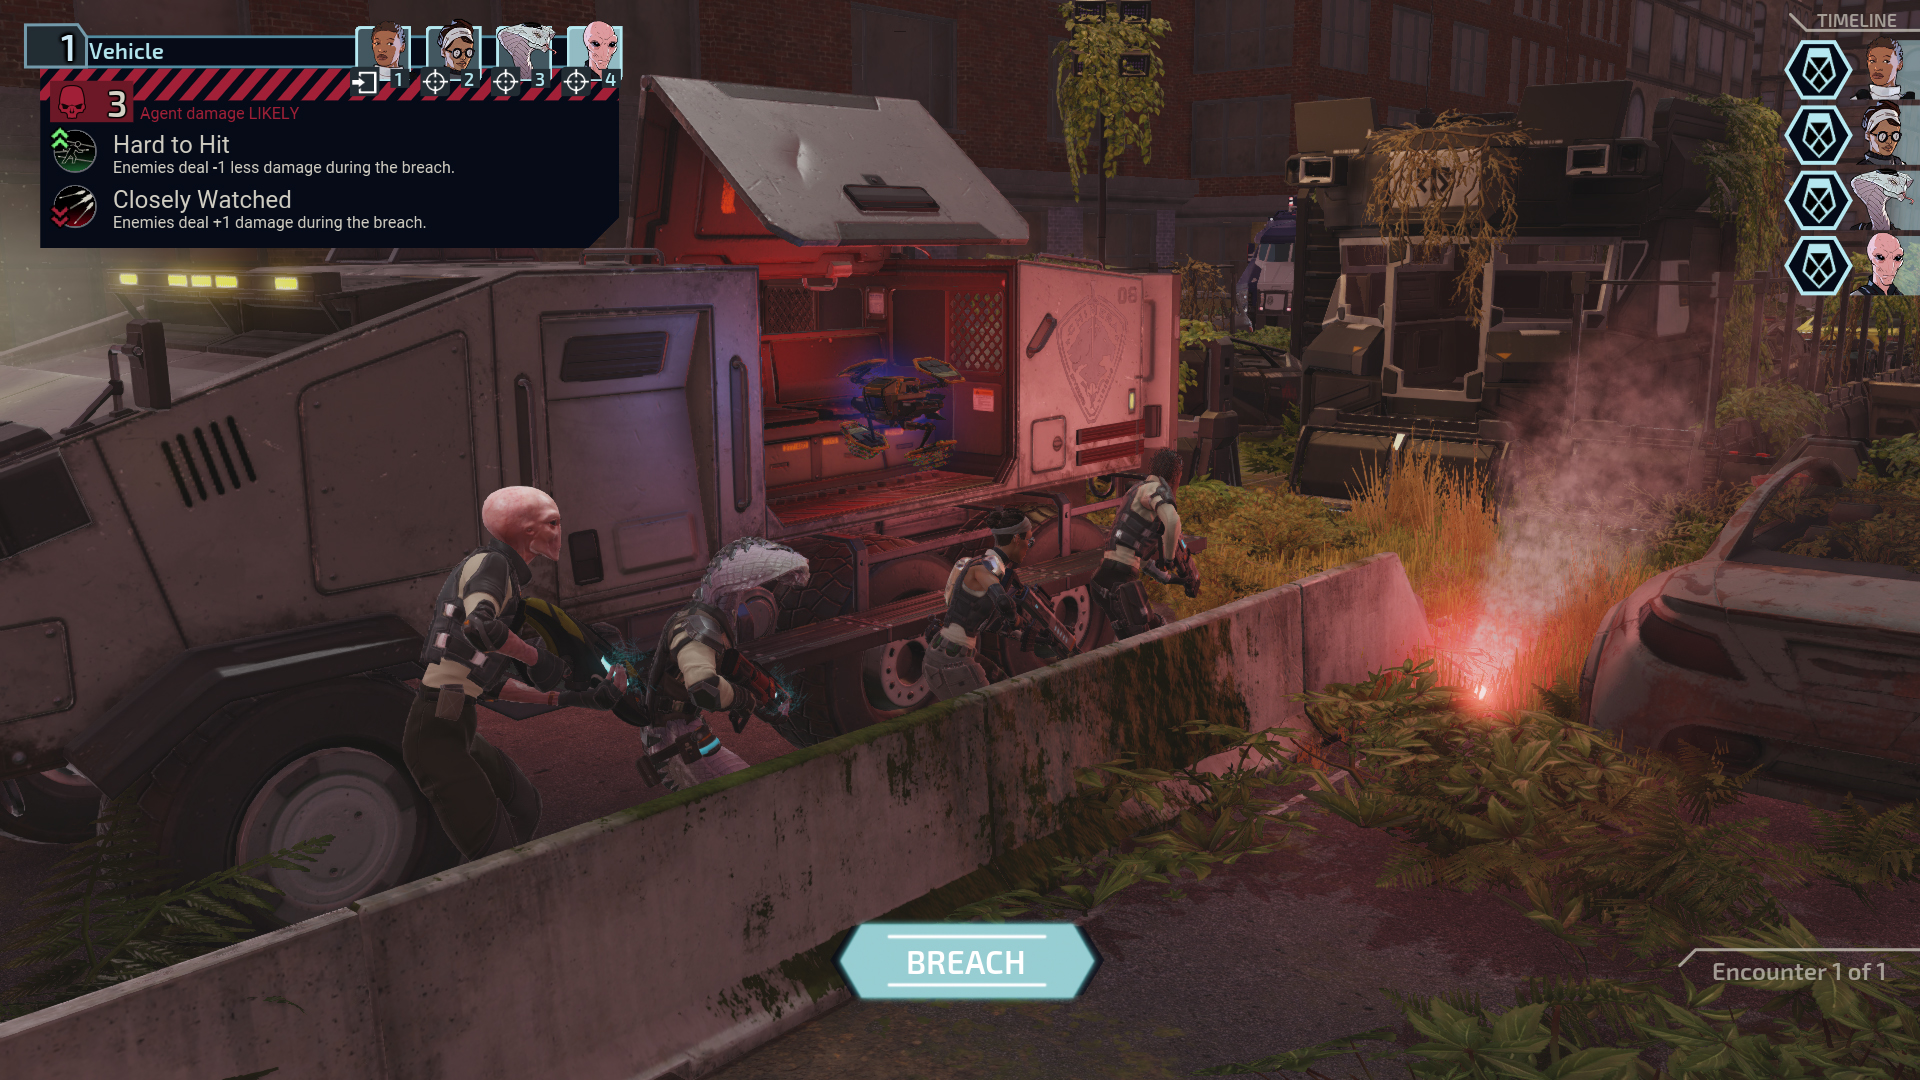 XCOM: Chimera Squad. Image Credit: Firaxis Games and 2K Games.